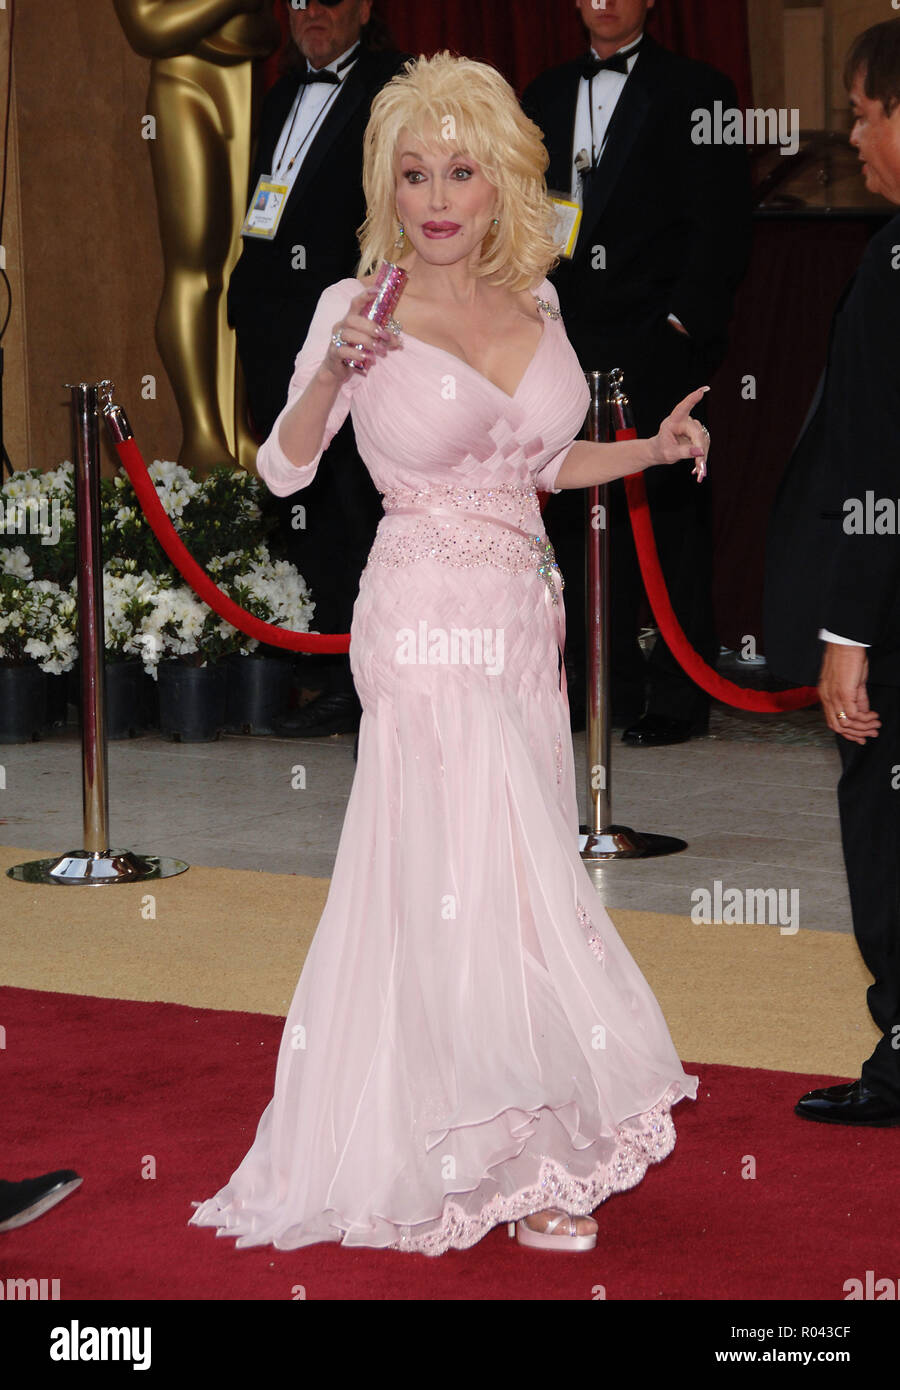 Dolly Parton Full Length Stock Photos and Images